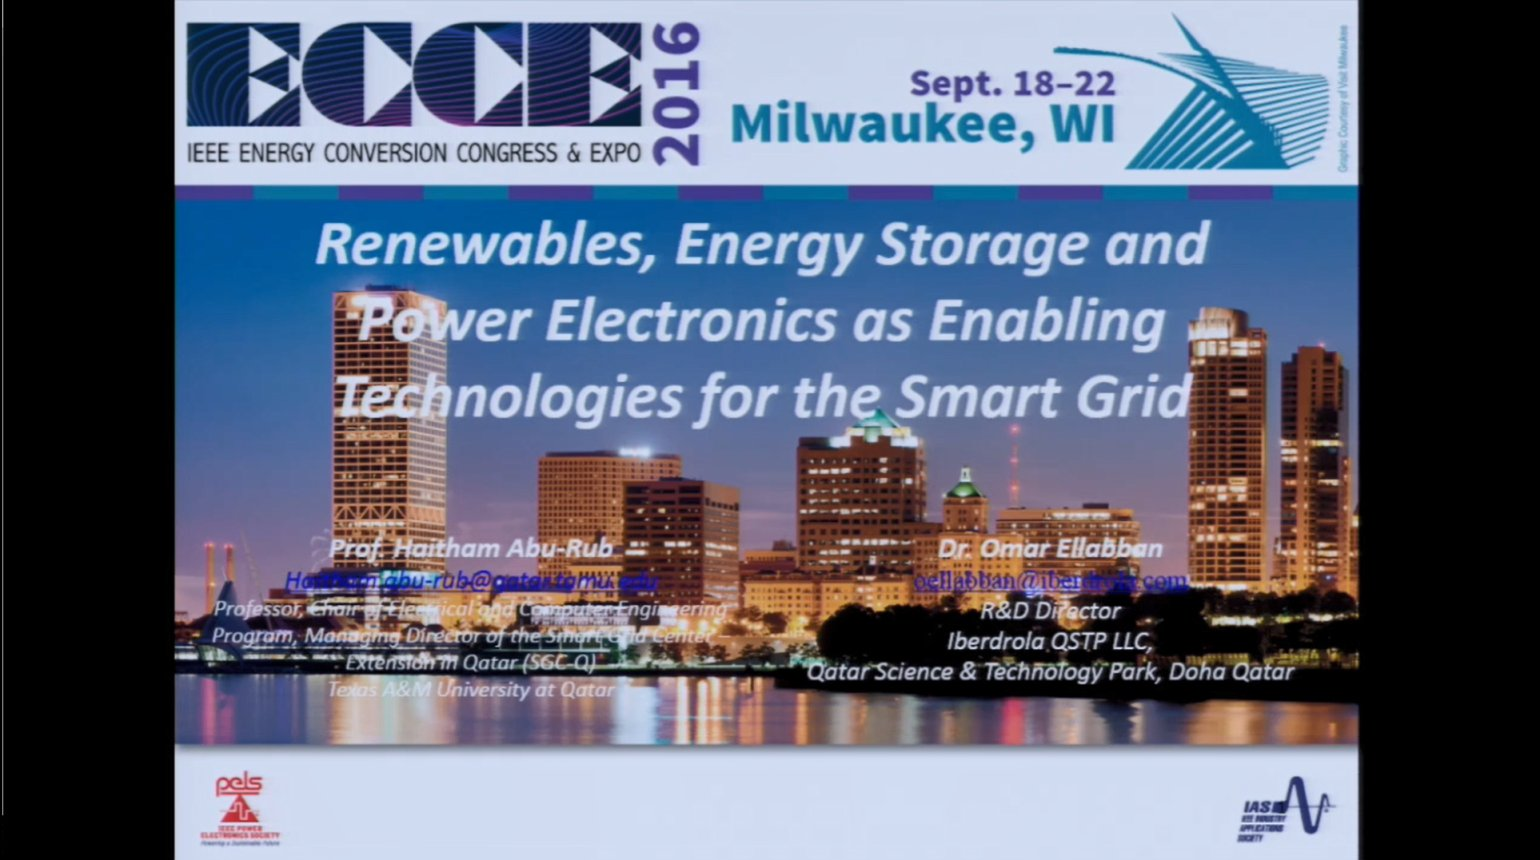 Renewables, Energy Storage and Power Electronics as Enabling Technologies for the Smart Grid